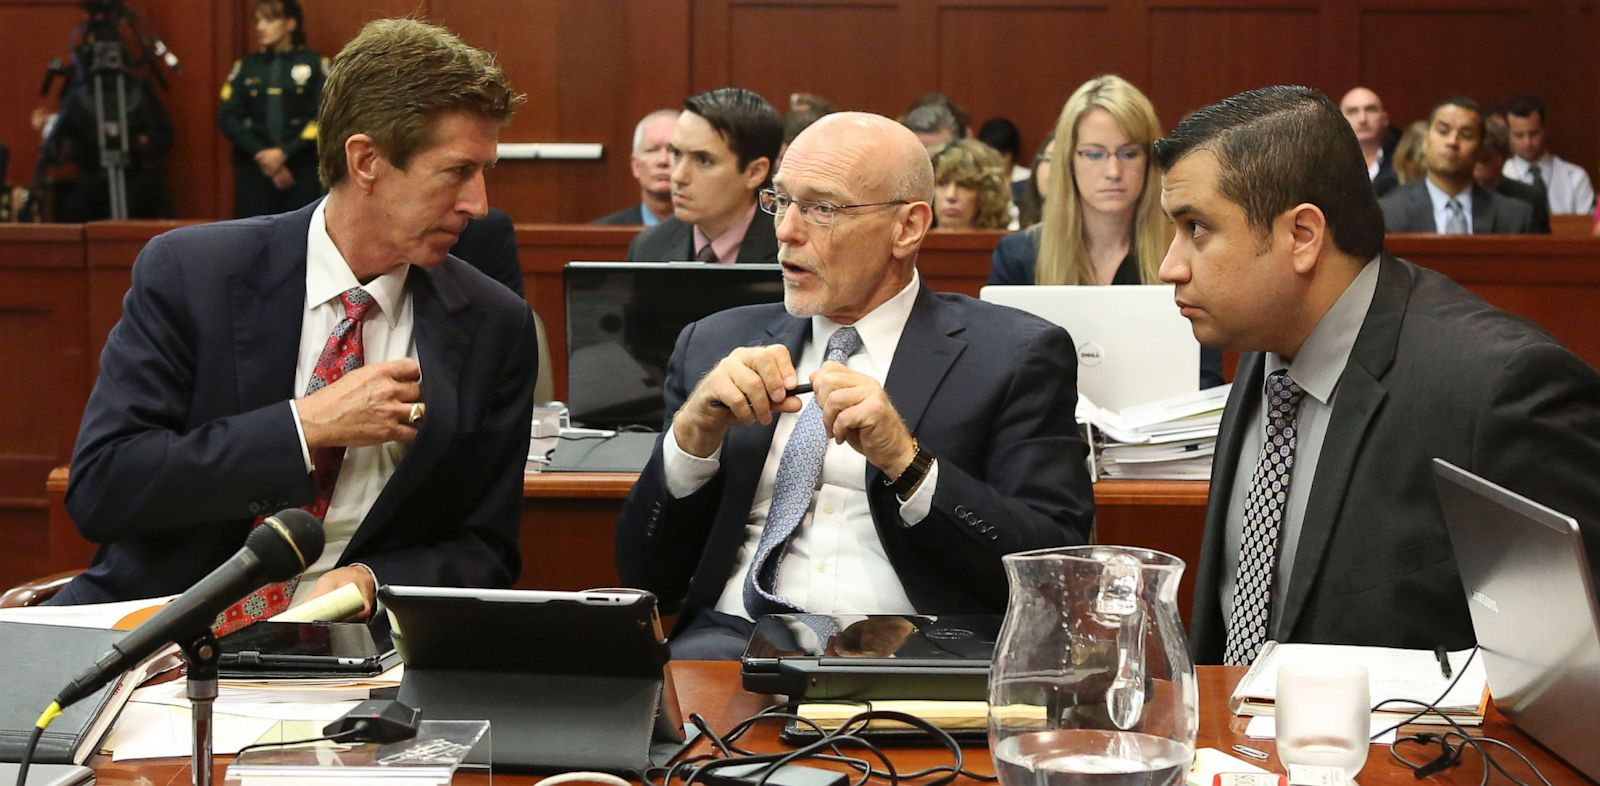 PHOTO: George Zimmerman Trial